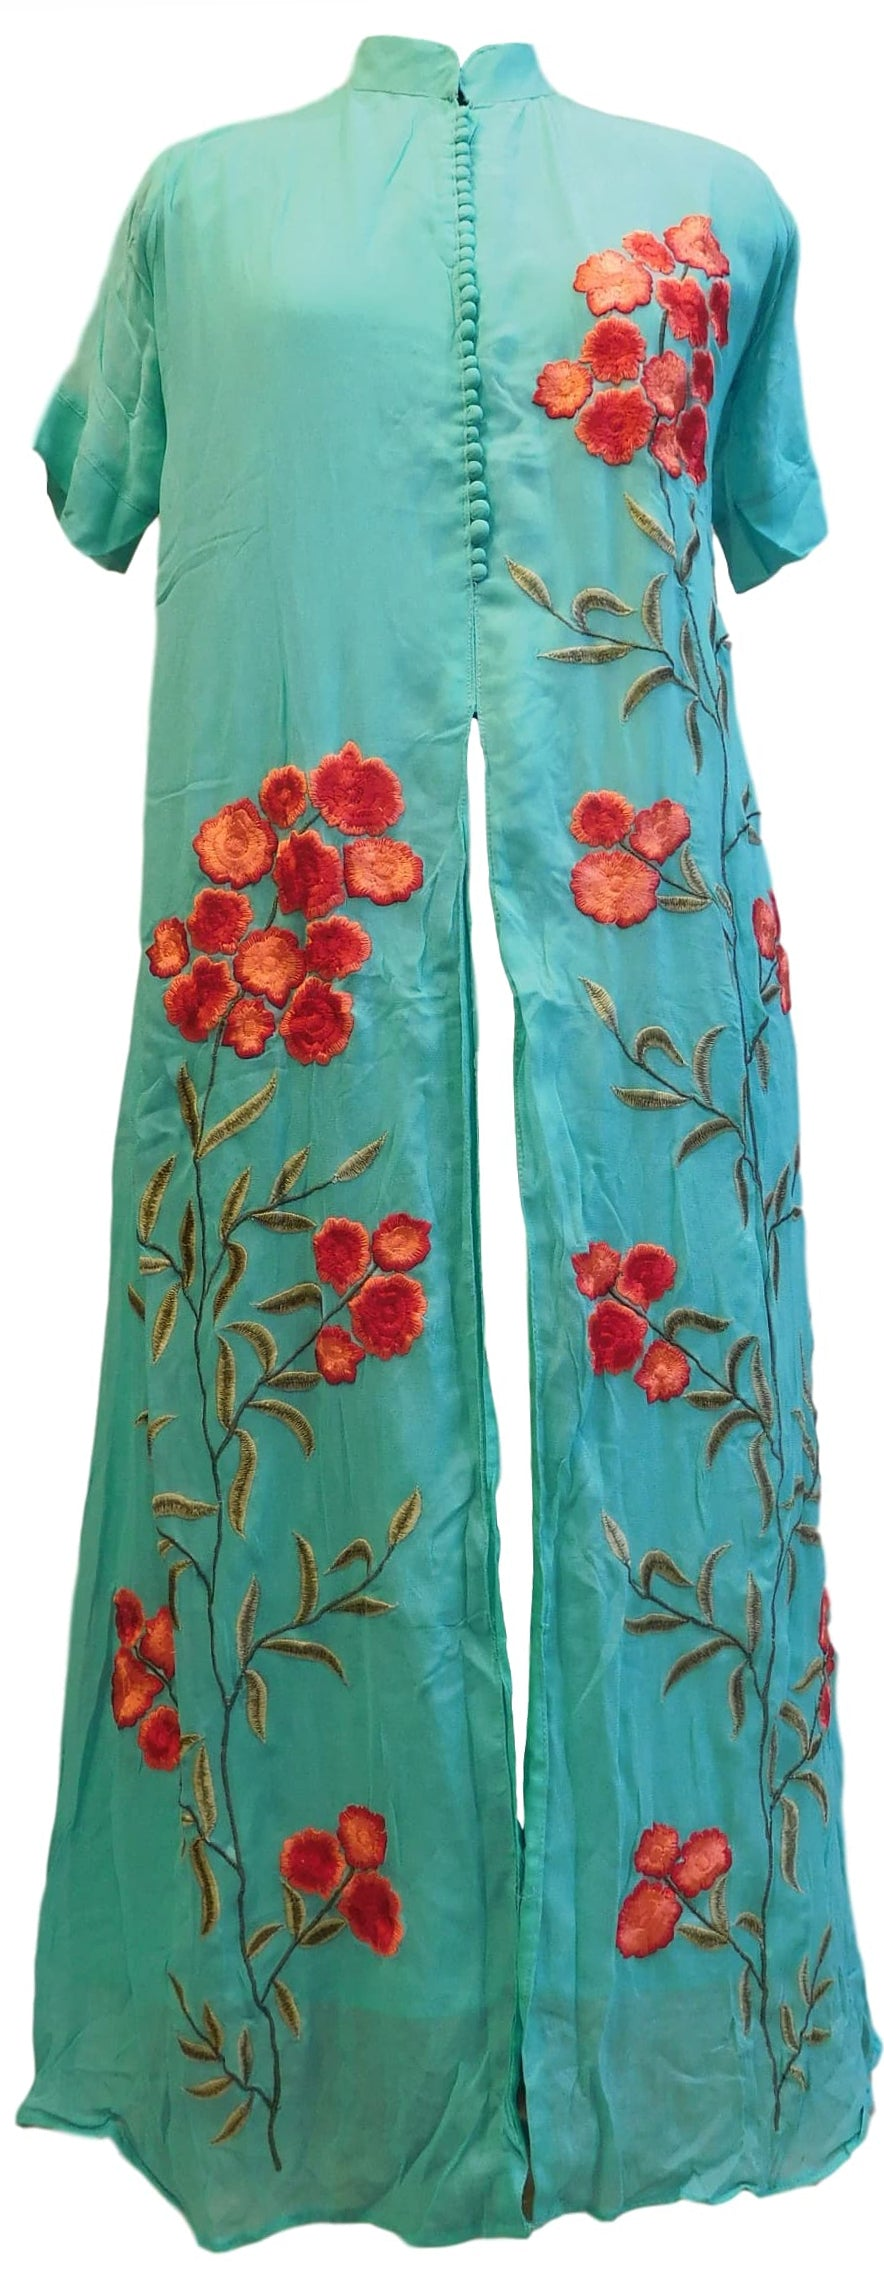 Turquoise Designer Georgette (Viscos) Embroidery Thread Work Kurti Kurta With Printed Chiffon Dupatta